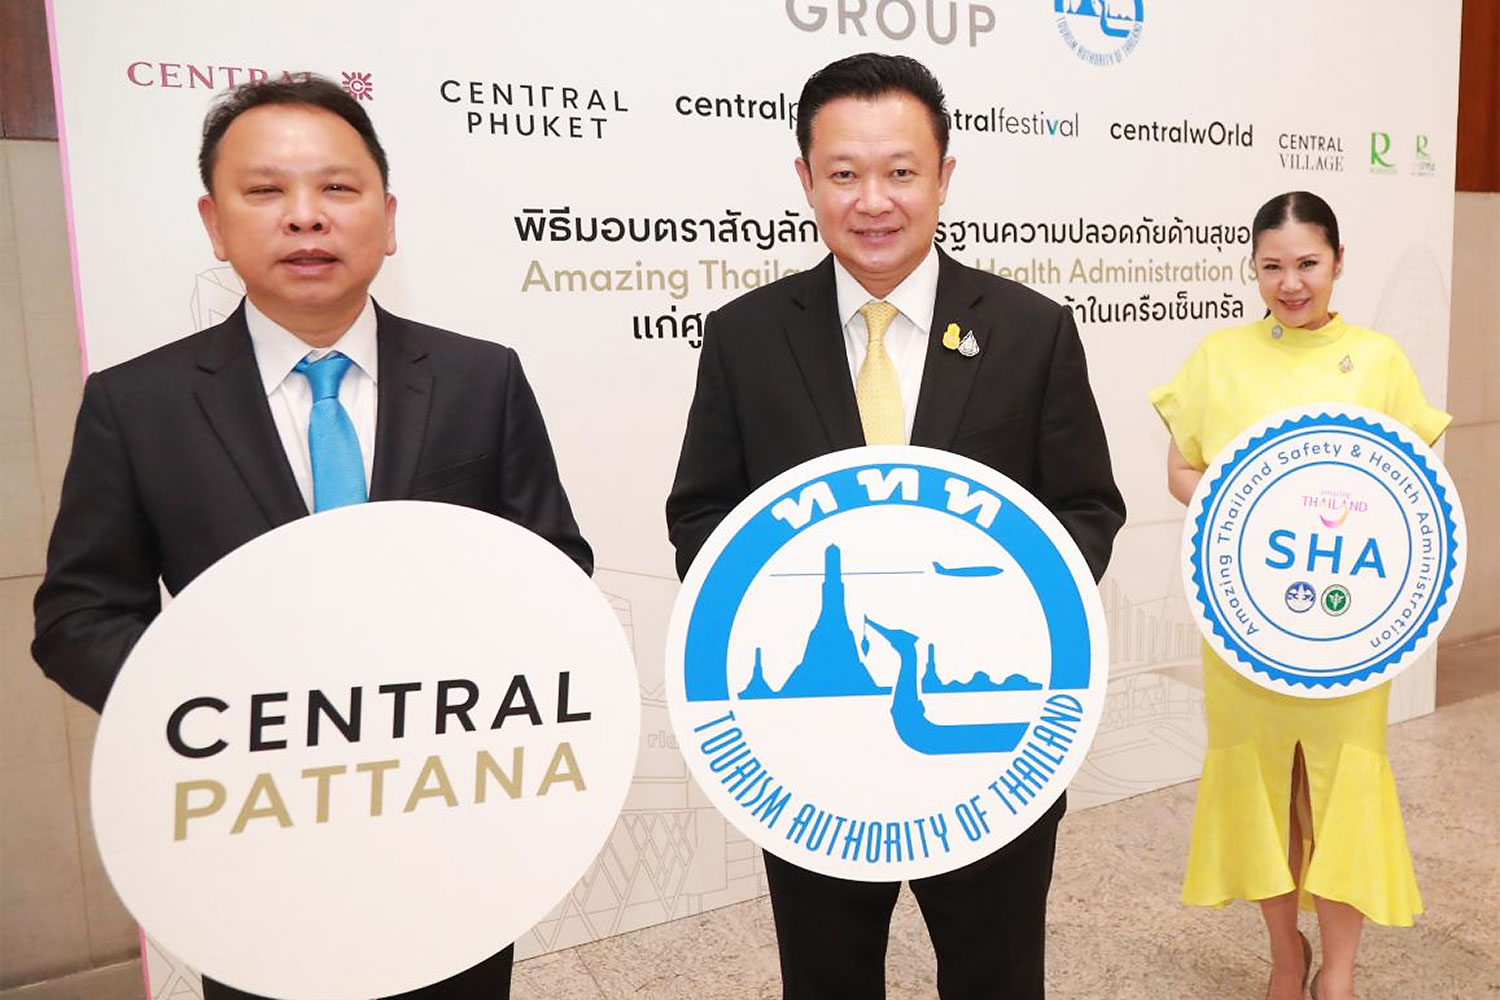 Nattakit Tangpoonsinthana (left), executive vice-president for marketing at CPN, receives the Amazing Thailand Safety & Health Administration (SHA) badge from TAT governor Yuthasak Supasorn (centre) and Thapanee Kiatphaibool, deputy governor for tourism products and business at the TAT.